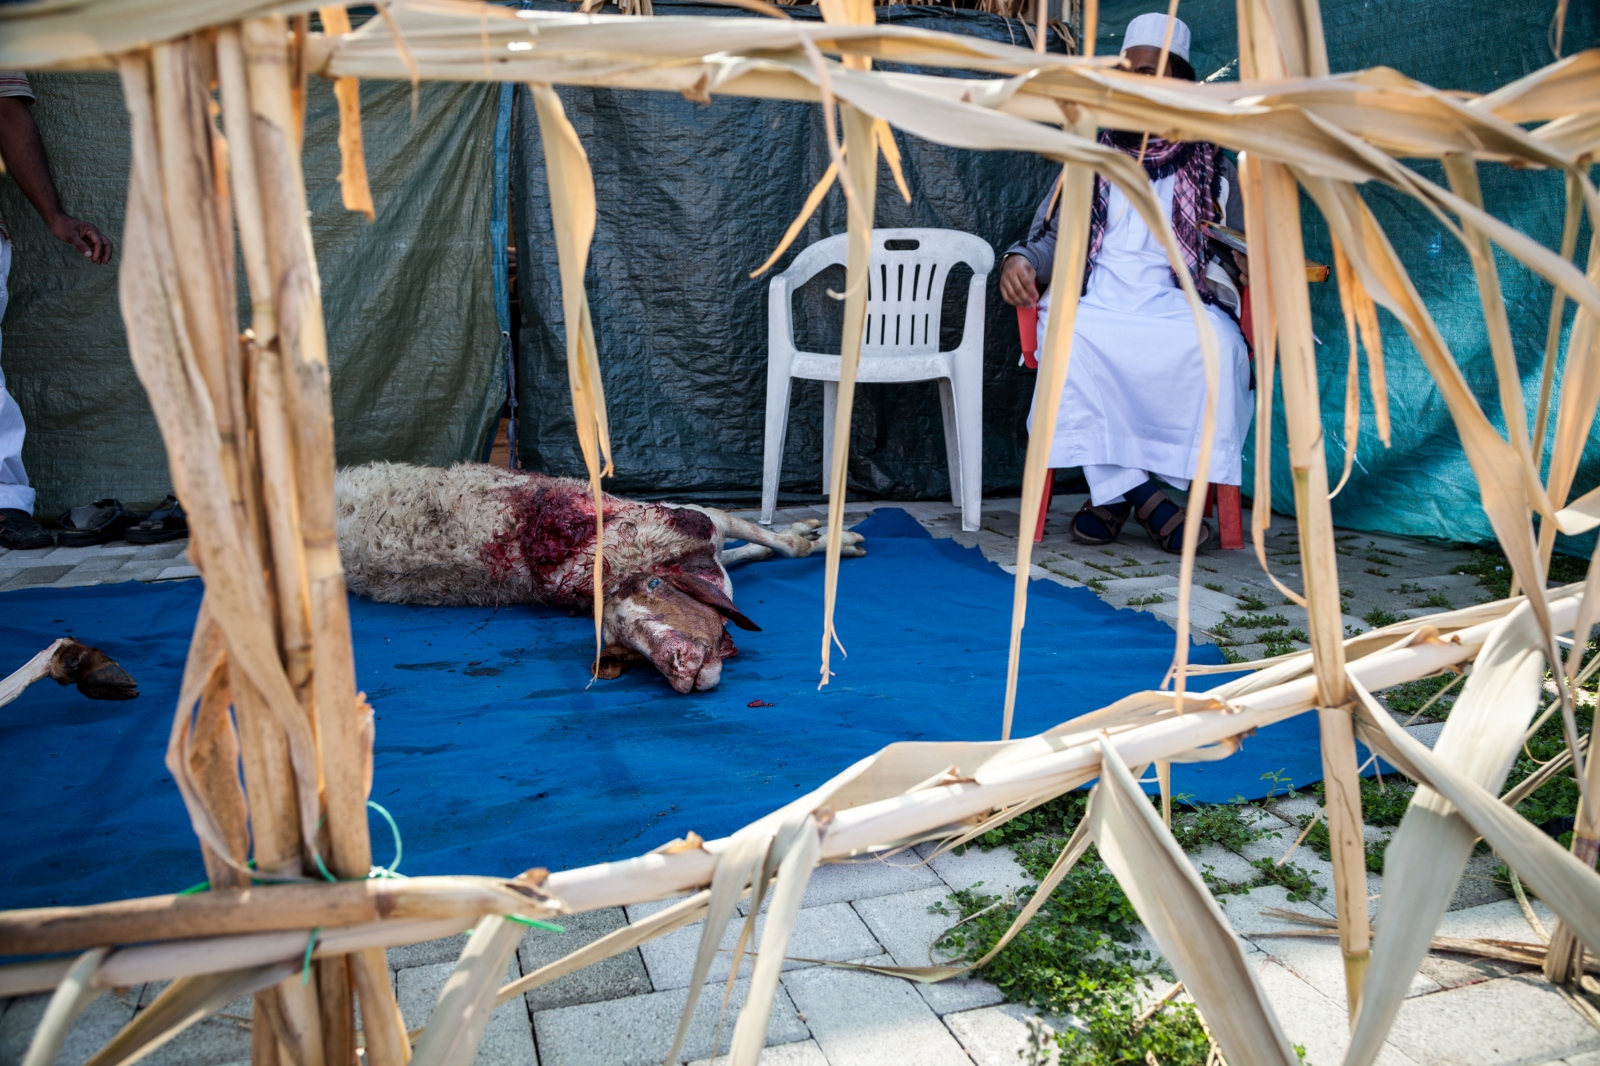 The sacrifice of nine sheep in a camp in the southeastern part of Rome, during Eid-el Adha, the Sacrifice Feast.